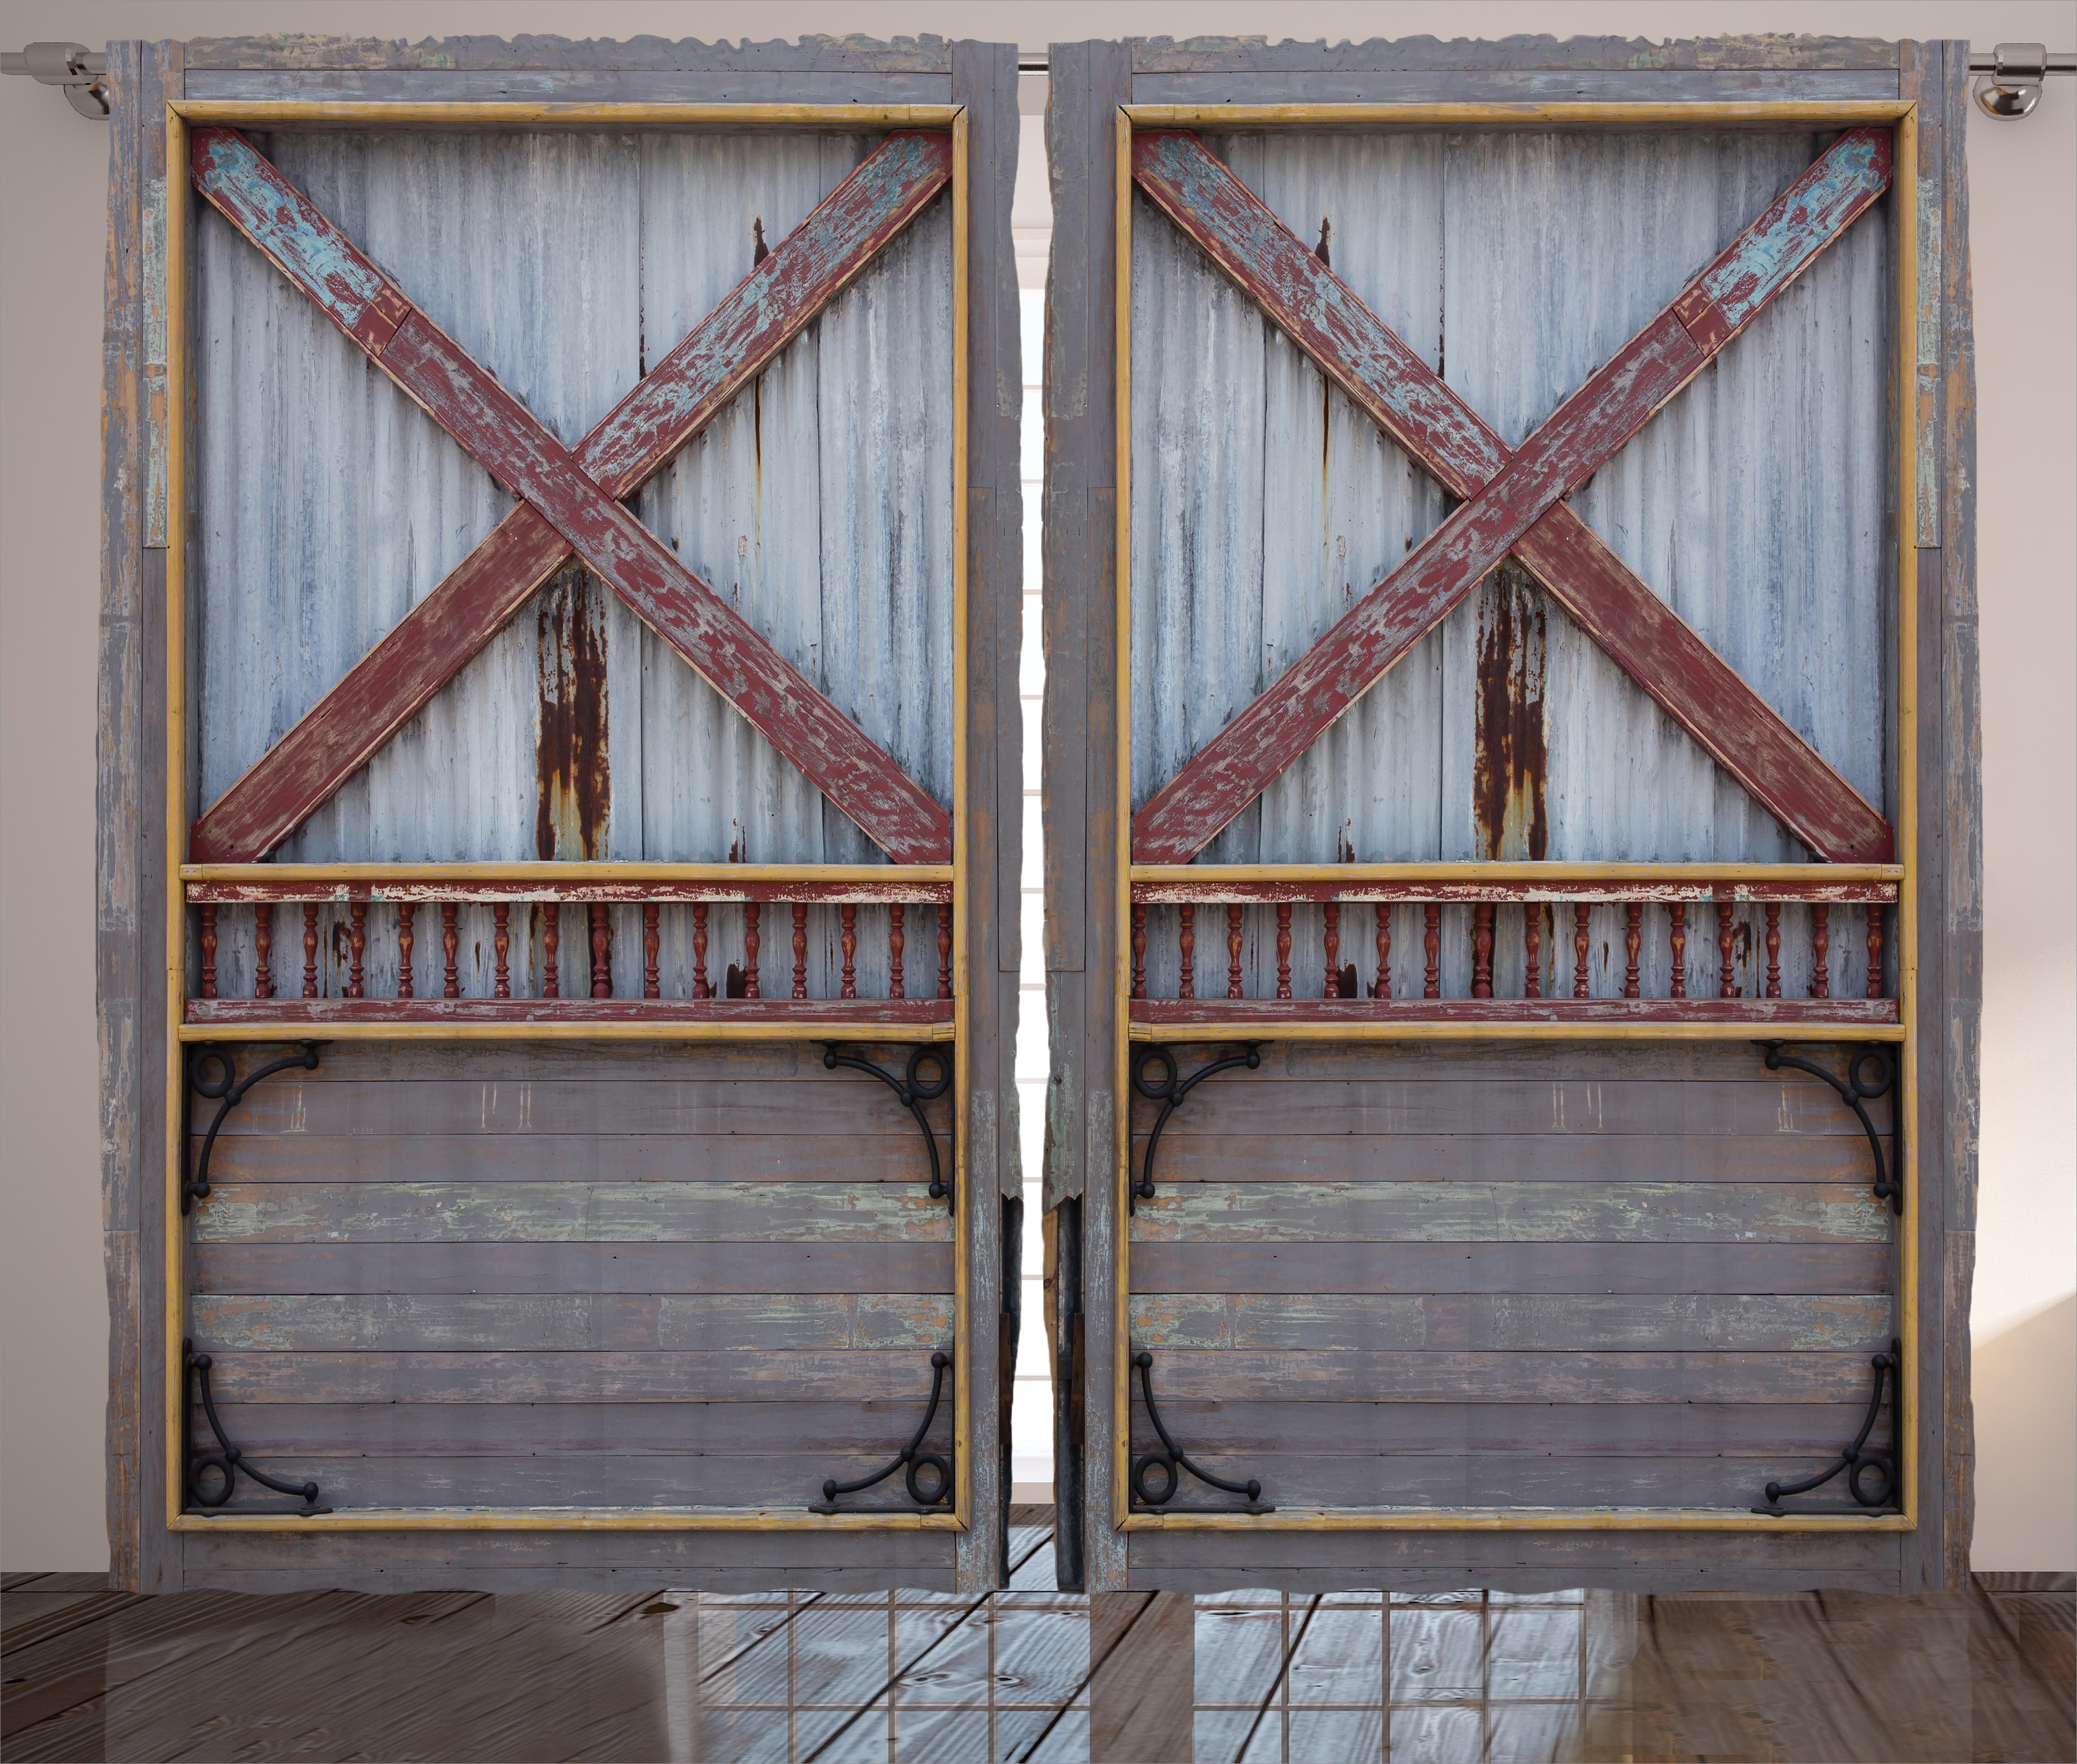 Blevins Industrial Zinc Wooden Gate Image Street Construction Graphic Print Text Semi Sheer Rod Pocket Curtain Panels